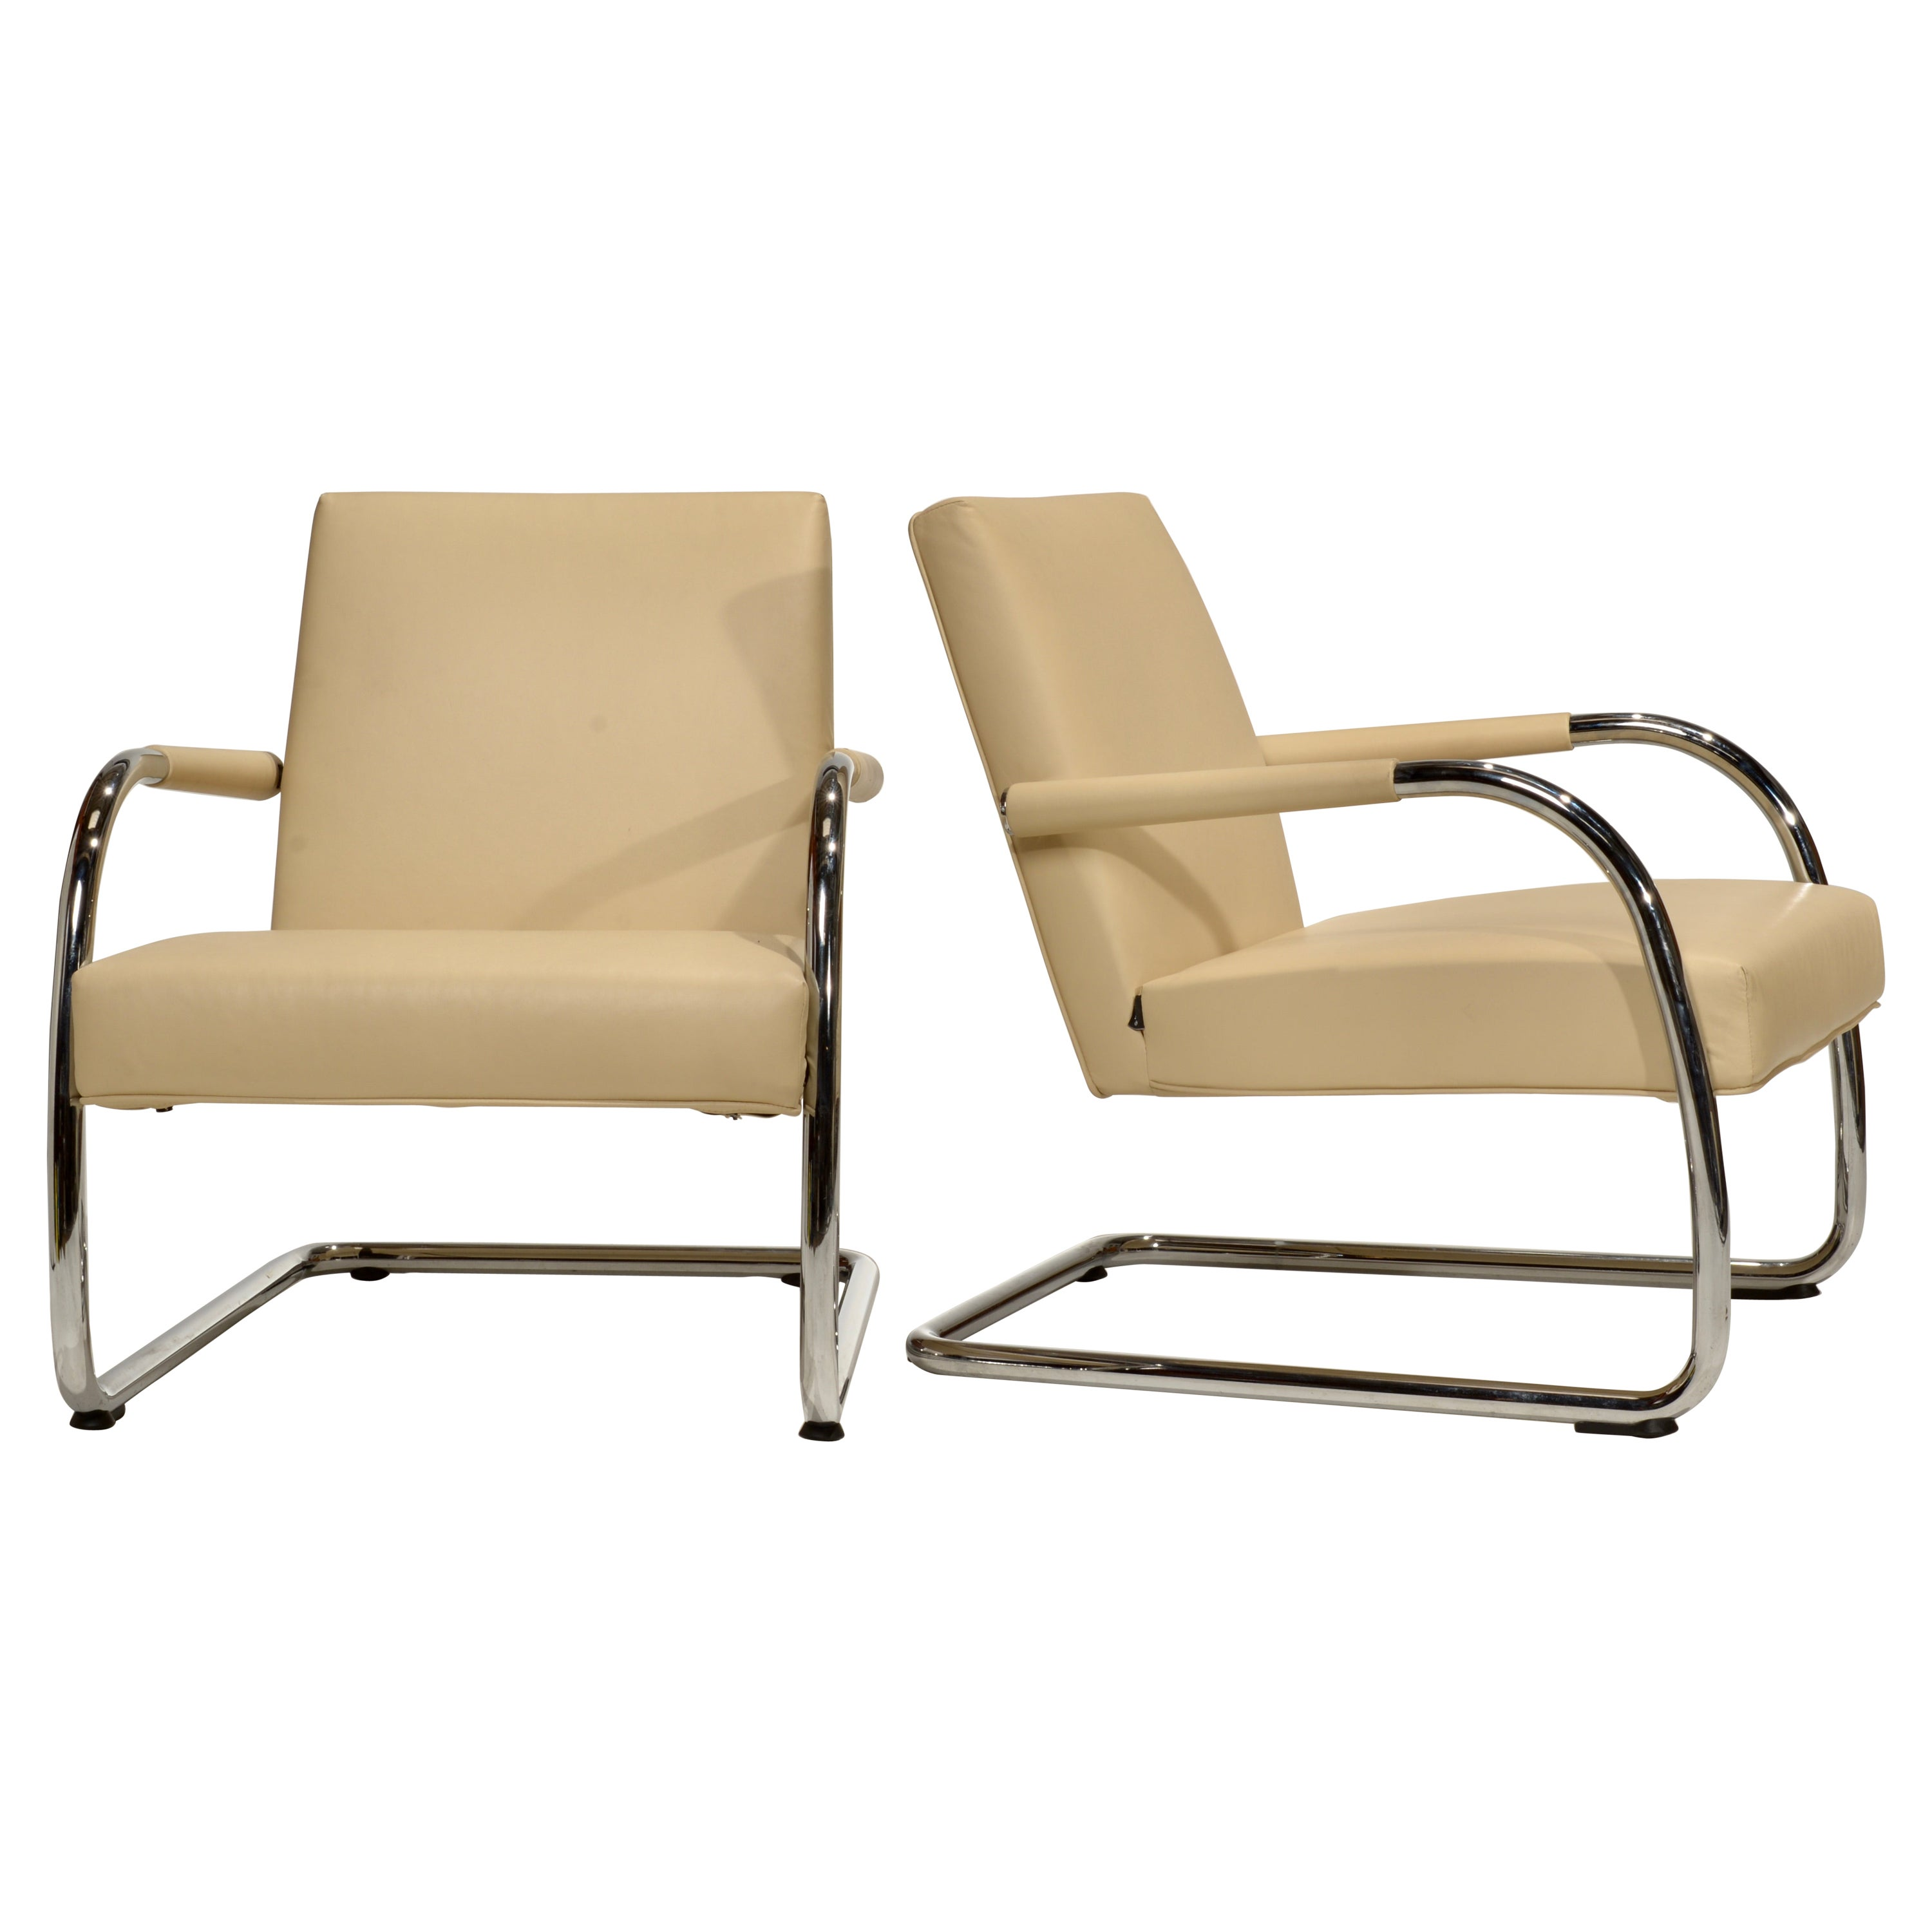 """""""Visa Lounge"""" Leather Lounge Chairs by Antonio Citterio for Vitra"""